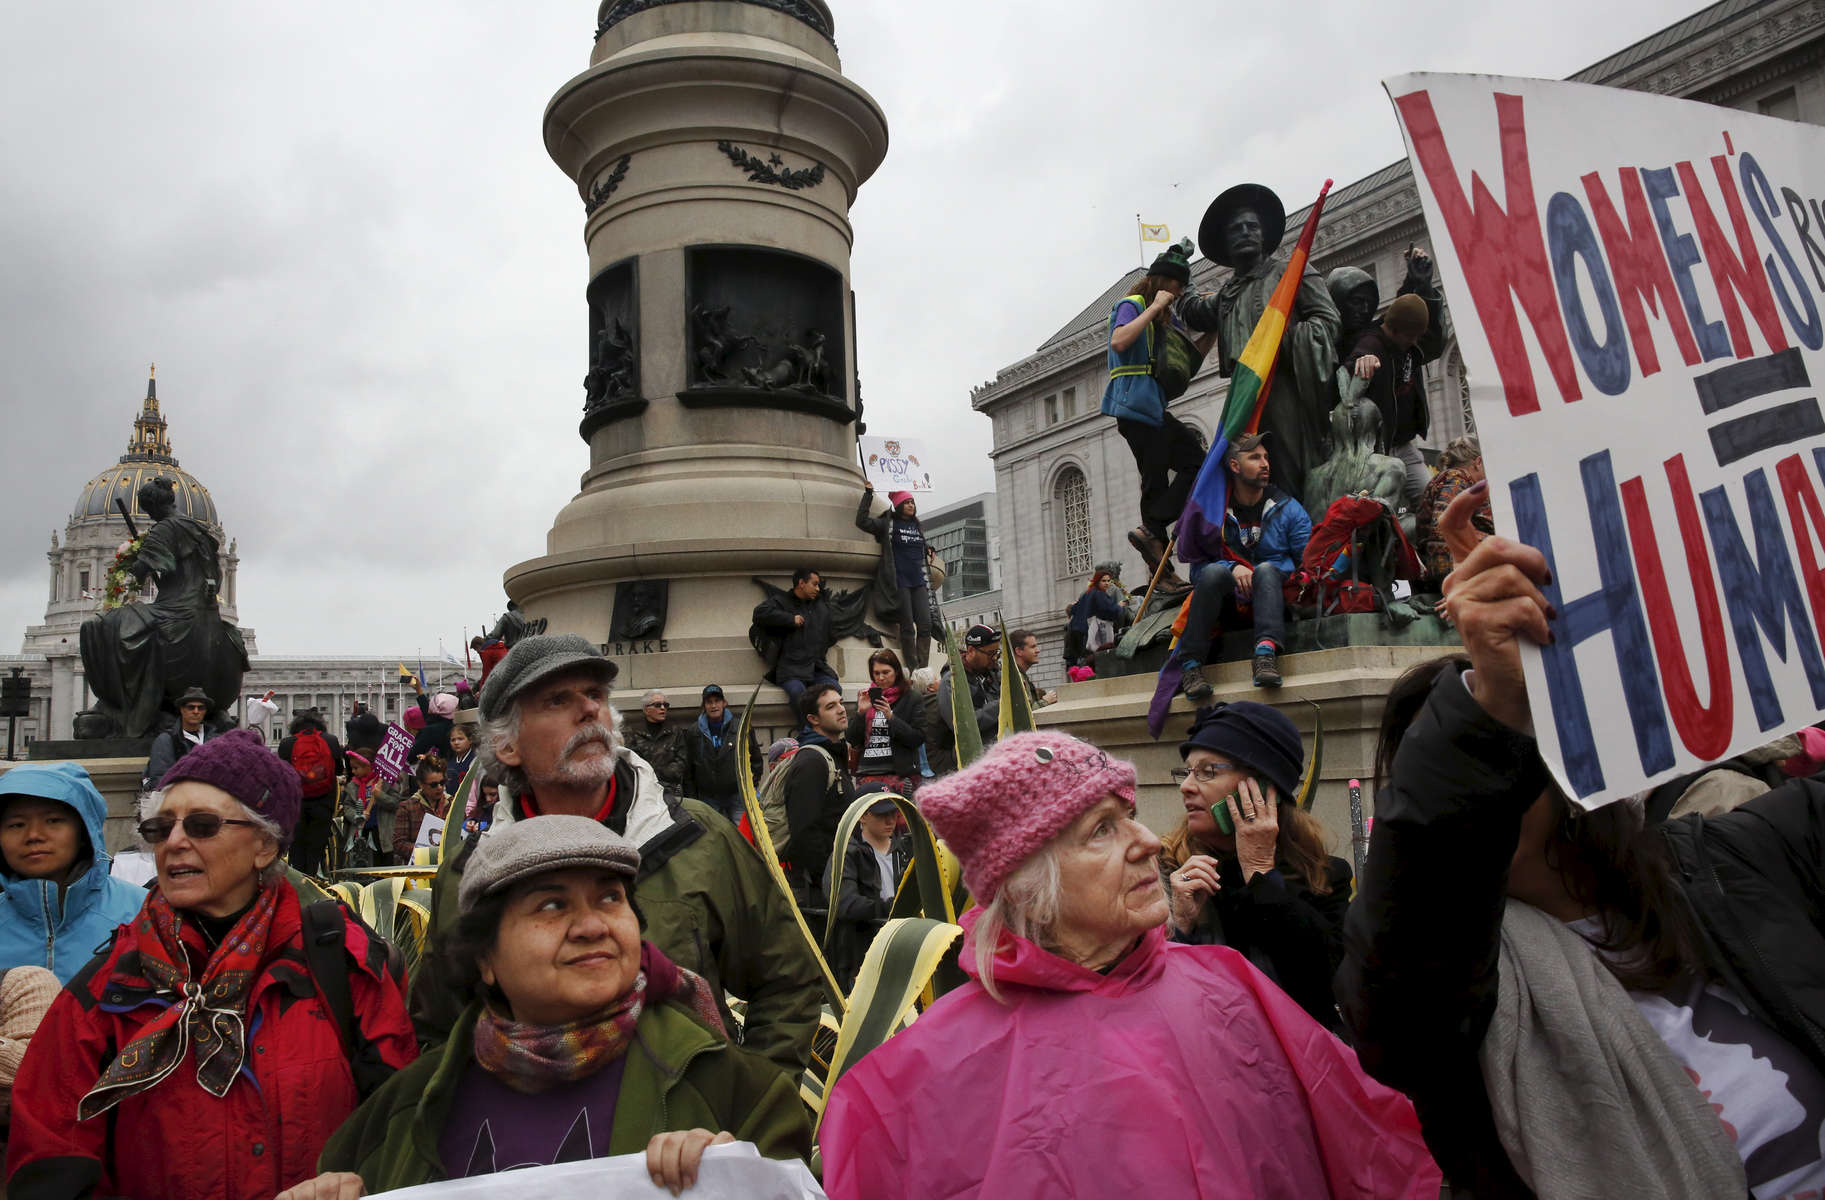 Elsy Tobar, front left, and Kathleen Holton, front right, stand with thousands of others and listen to speakers during a rally in Civic Center Plaza before the Women's March Jan. 21, 2017 in San Francisco, Calif. Thousands gathered in San Francisco to march in solidarity with the Women's March on Washington D.C. to protest the presidency of Donald J. Trump and to rally for the rights of all races, classes and gender identities.